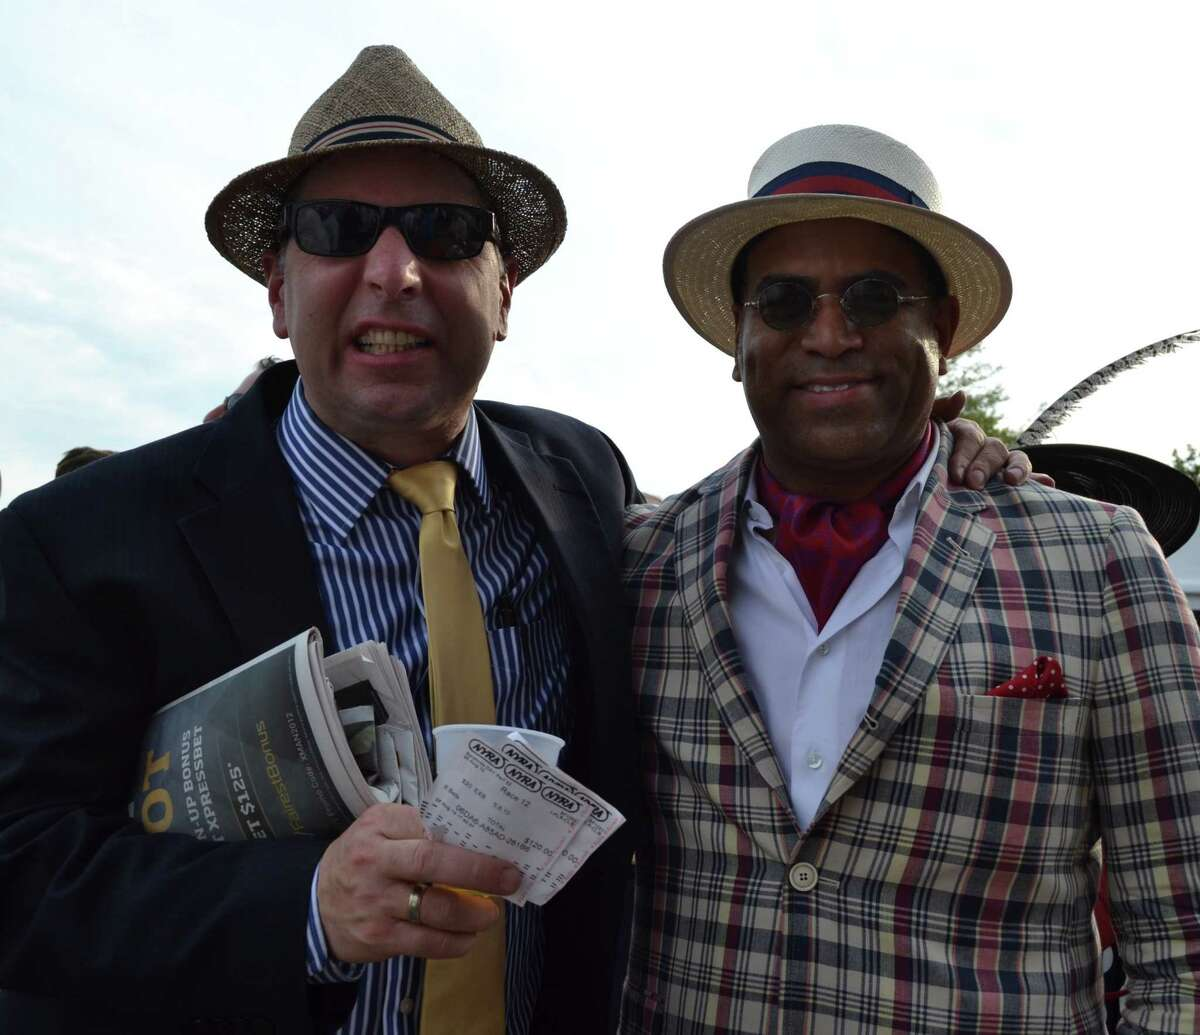 Were you Seen at Travers at the Saratoga Race Course on Saturday August 25th?